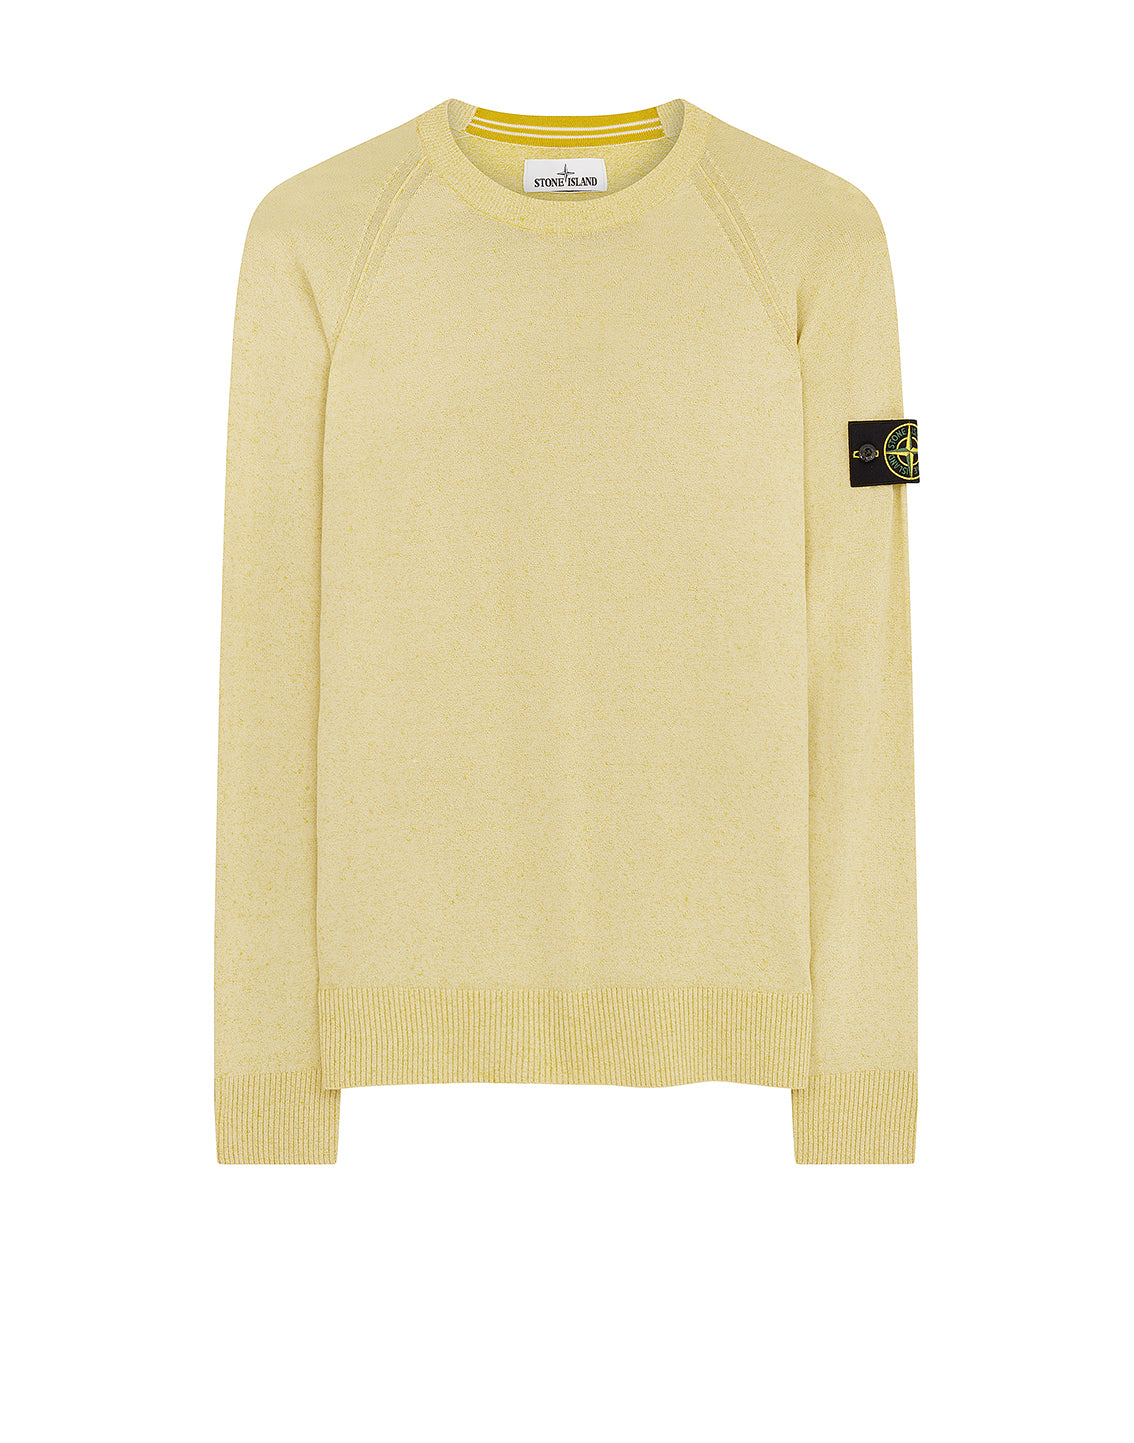 545A6 Crewneck Kint in Yellow